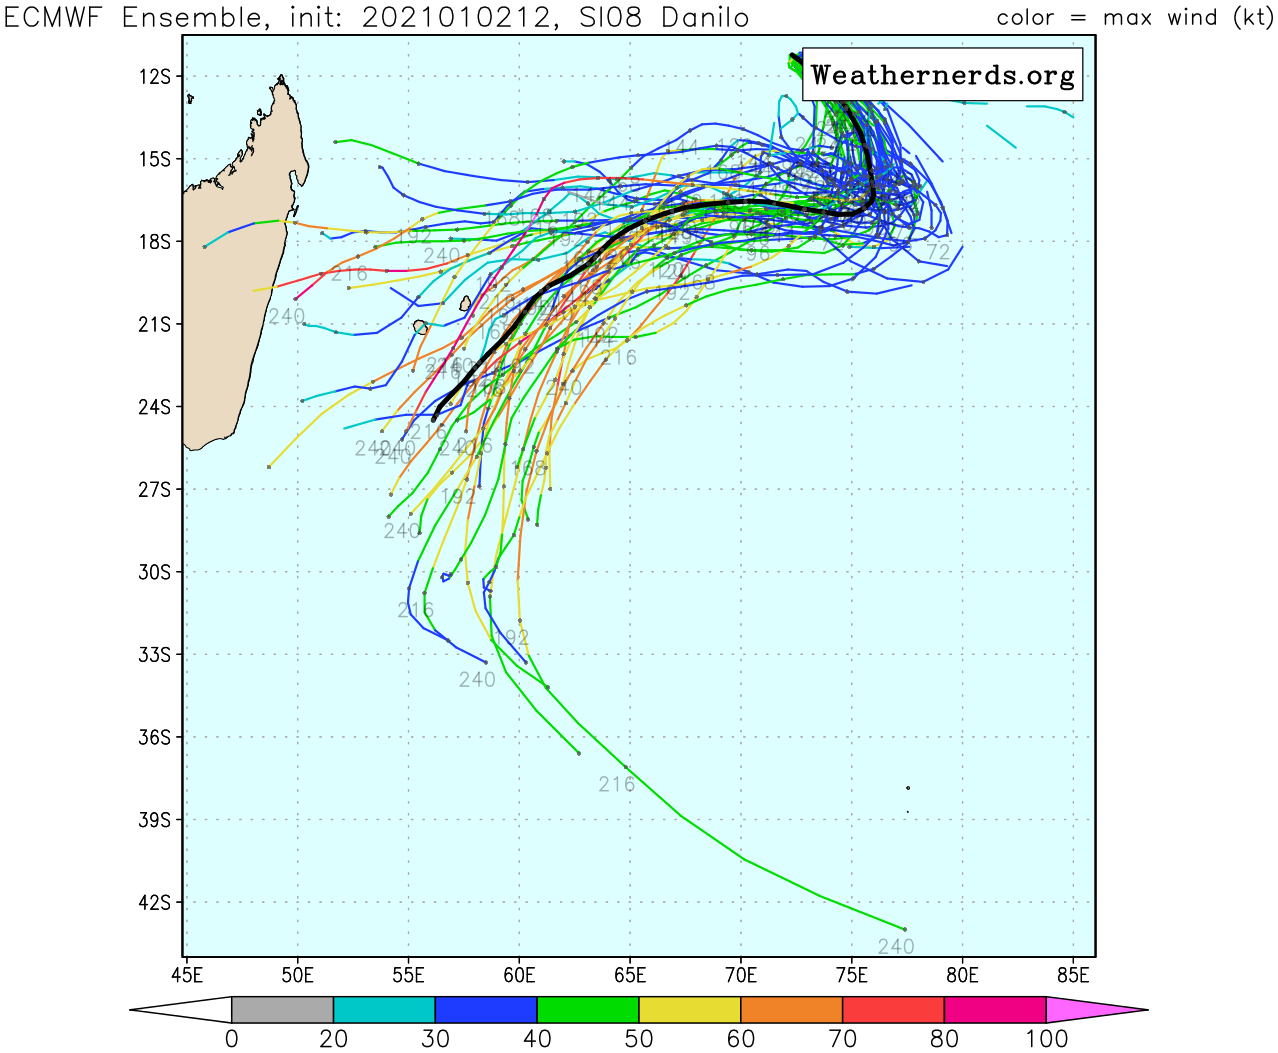 NUMERICAL MODEL GUIDANCE HAS COME INTO  BETTER AGREEMENT WITH THE OVERALL TRACK PHILOSOPHY BUT CONTINUES TO  SHOW SIGNIFICANT DIFFERENCES IN TRACK SPEED AND TRACK ORIENTATION.  THE JTWC FORECAST CONTINUES TO FAVOR THE ECMWF AND ECMWF ENSEMBLE  MEAN SOLUTIONS, AND IS CONSISTENT WITH THE PREVIOUS JTWC FORECAST.